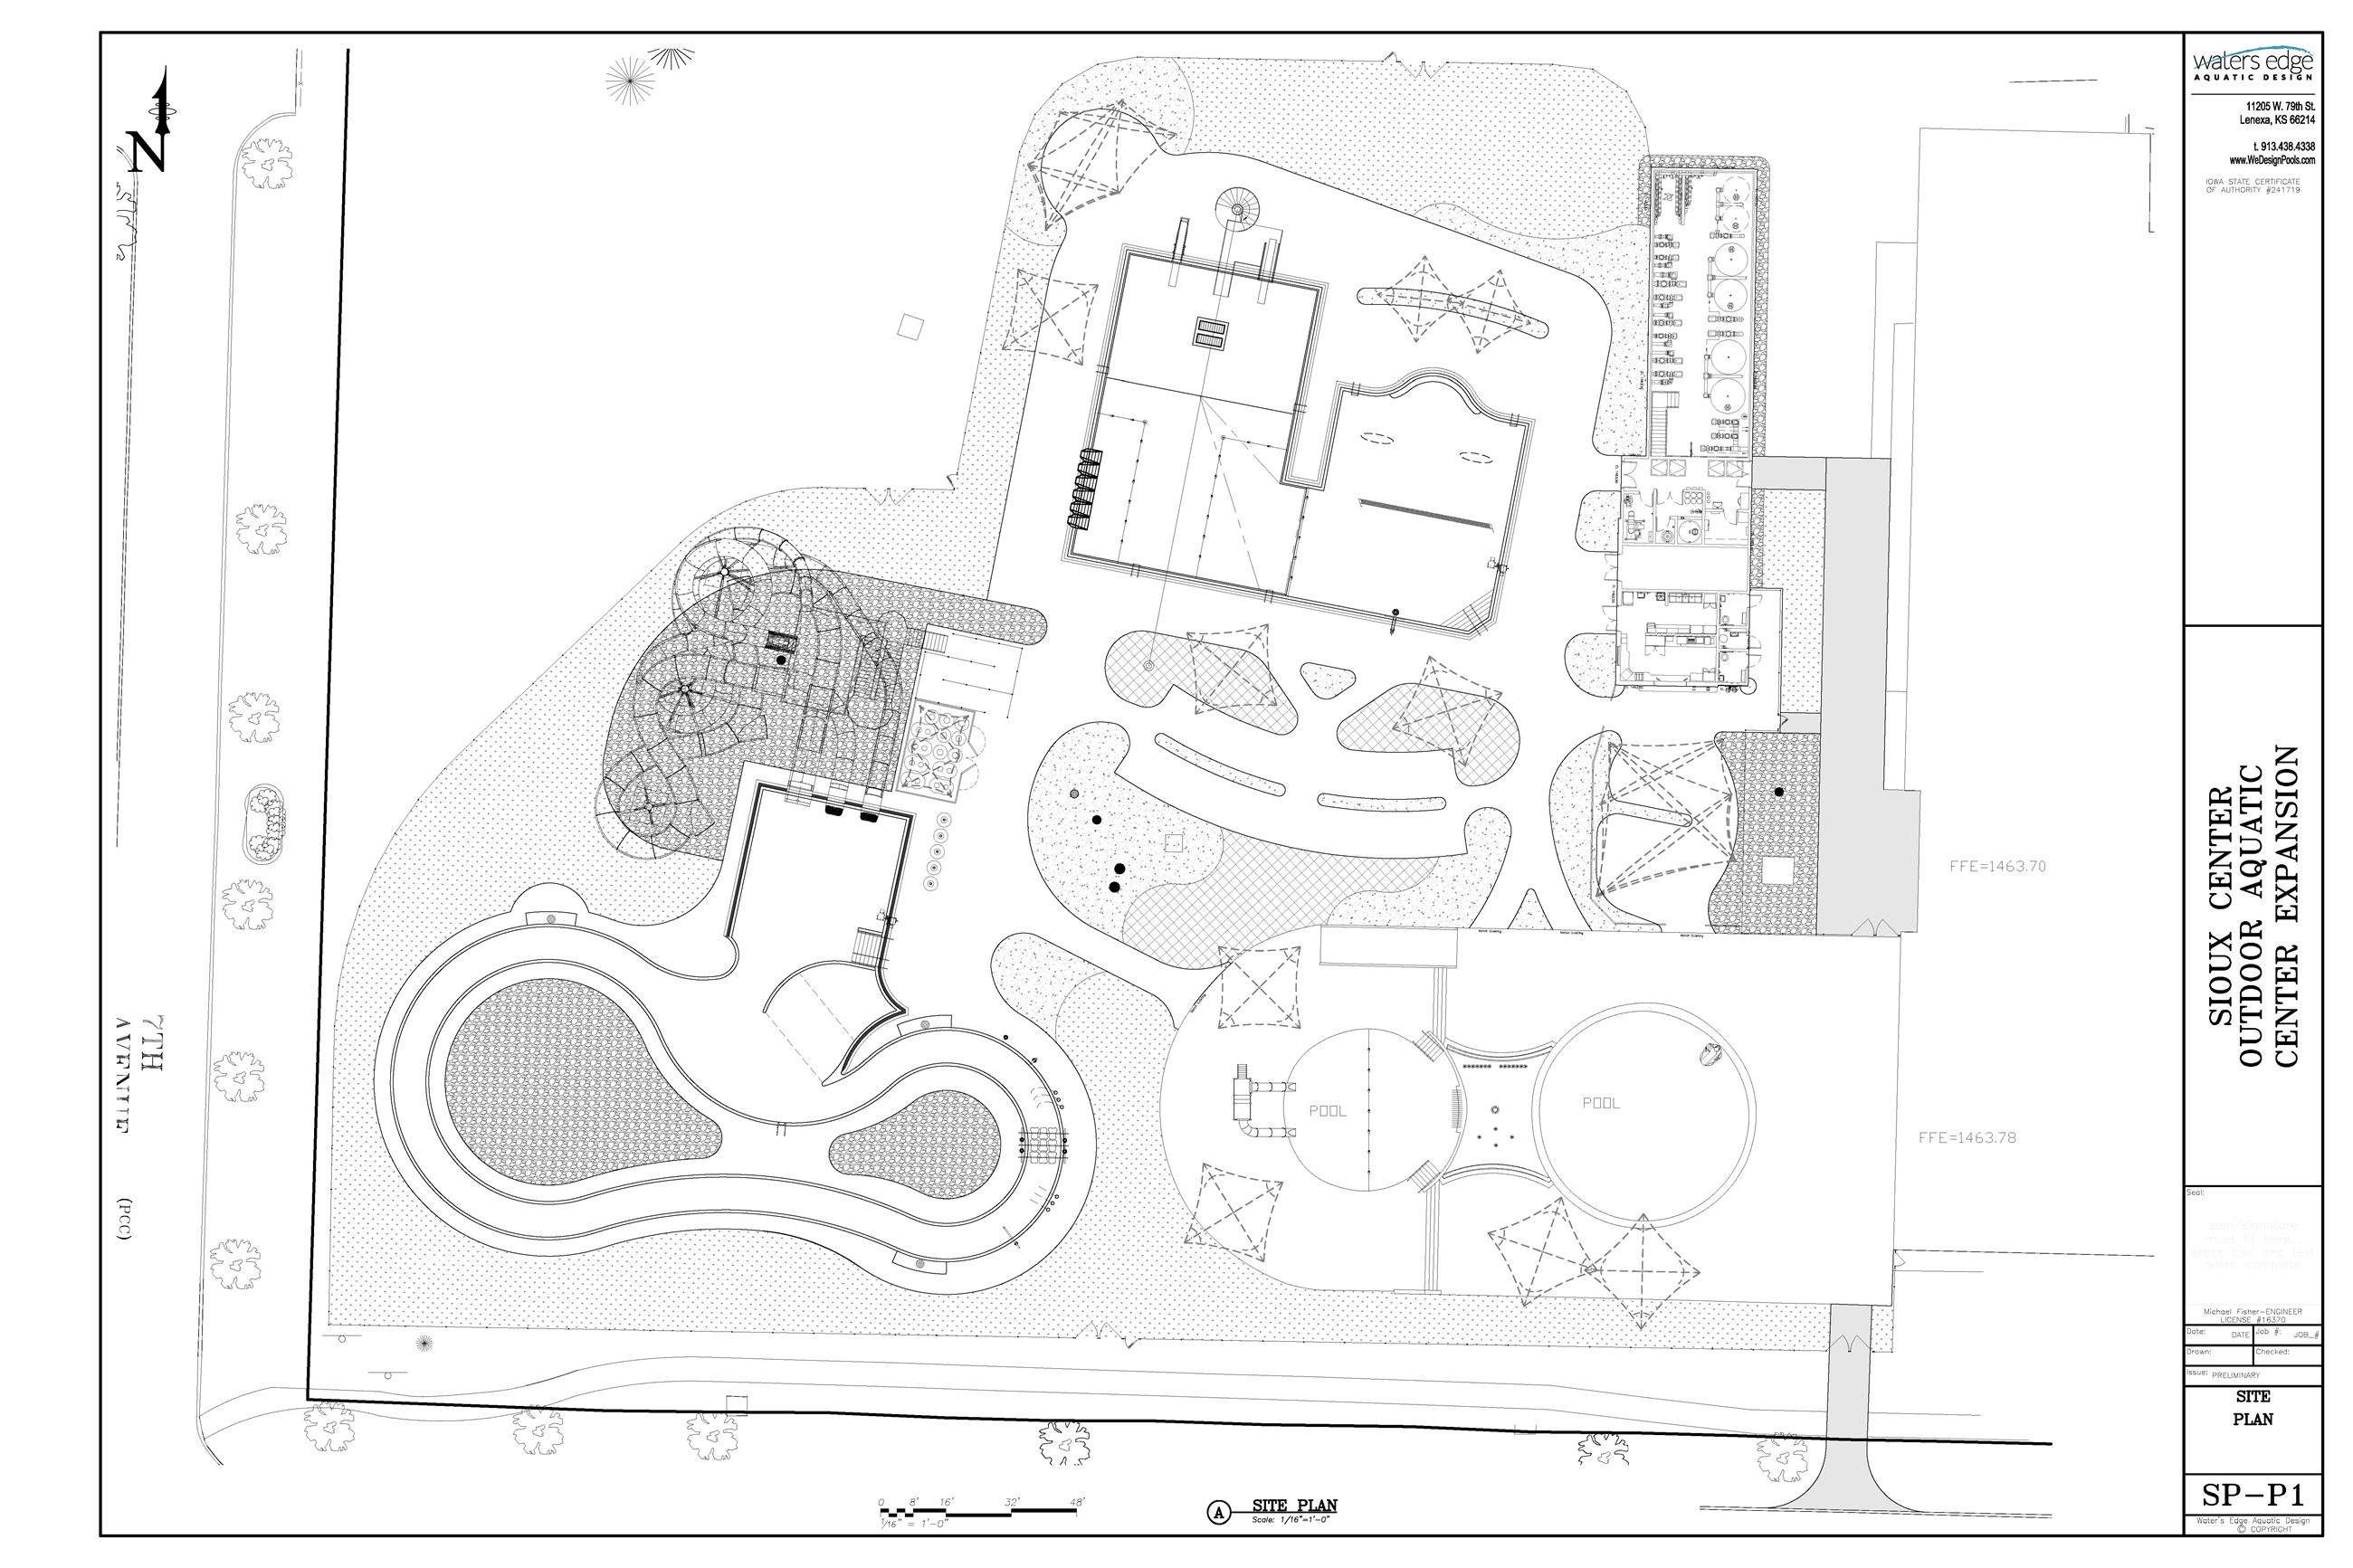 Aquatic Center design sketch